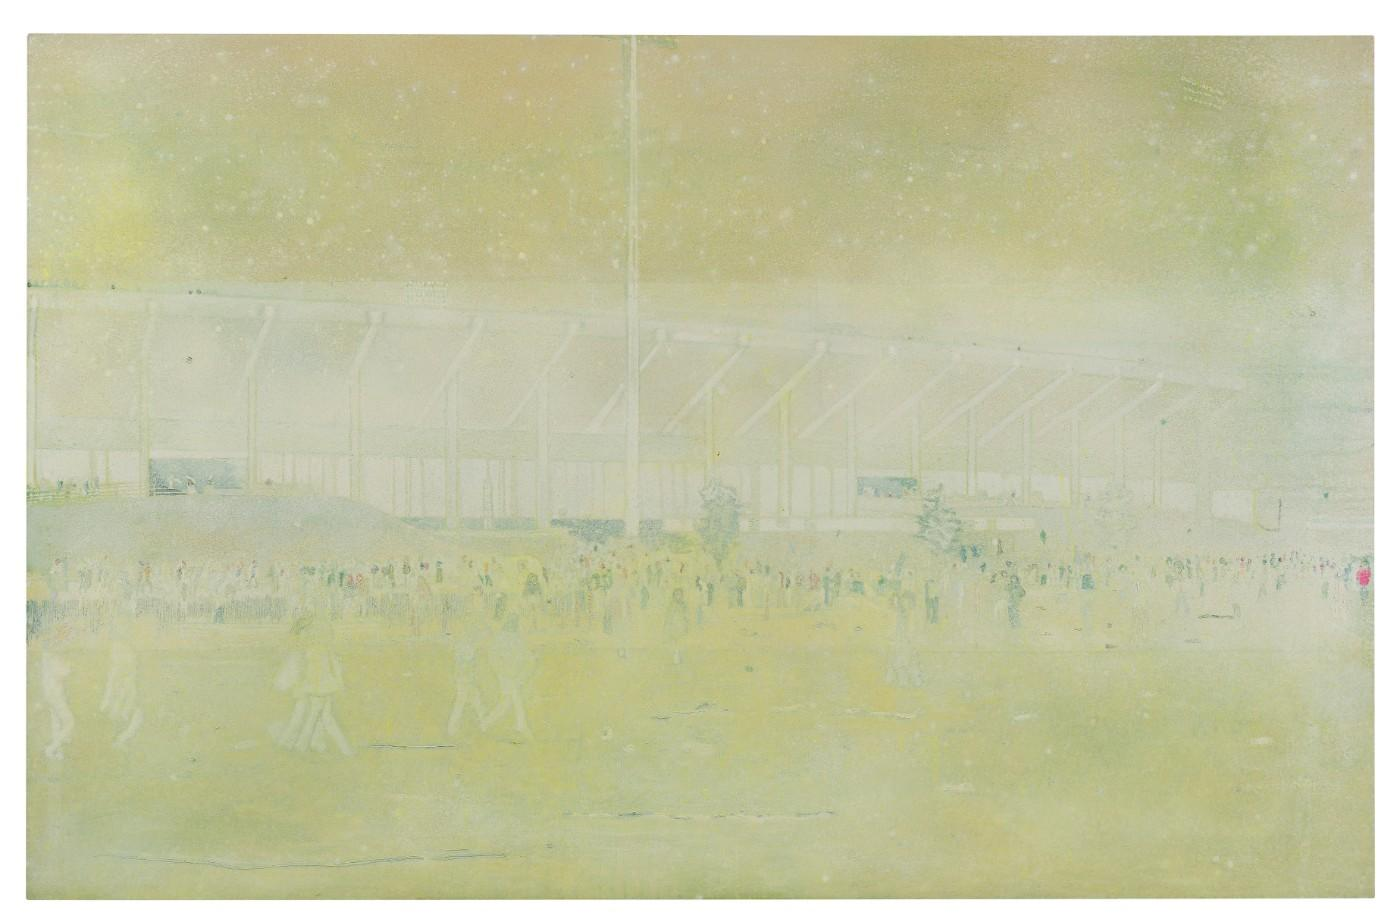 Peter Doig, Buffalo Station II, 1997-1998